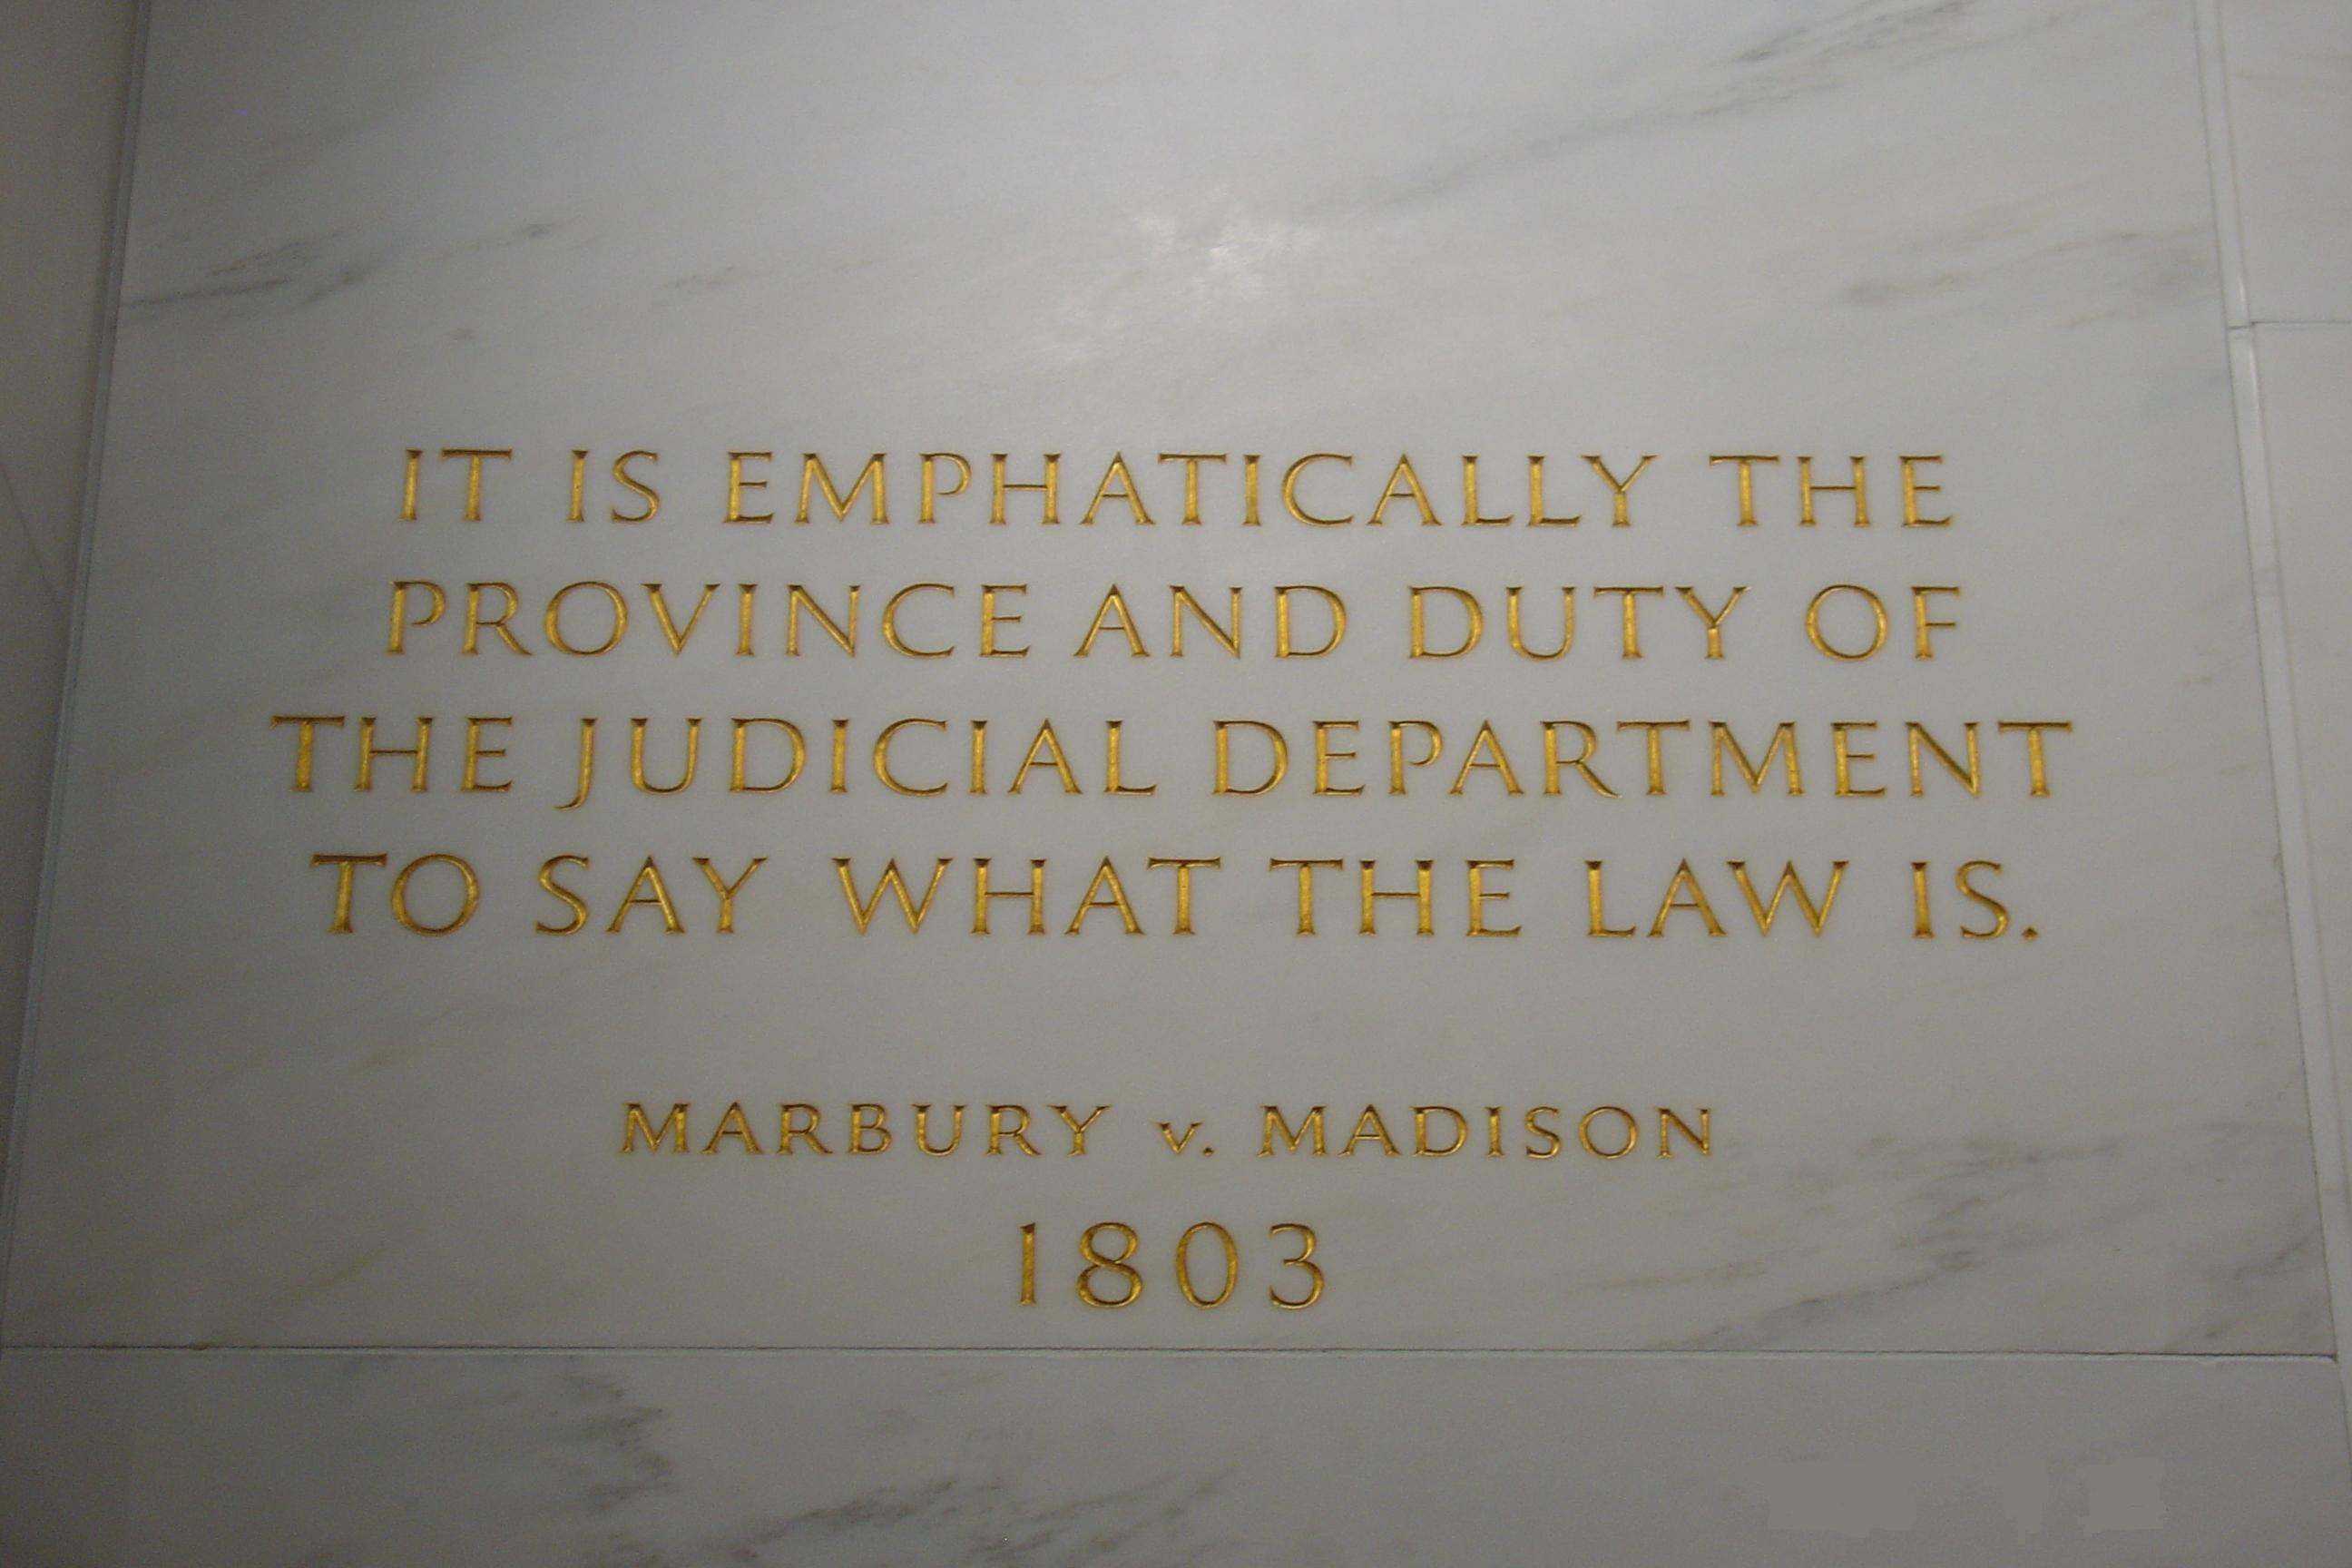 a review of the case of marbury versus madison Marbury v madison is considered by many to be not just a landmark case for the supreme court, but rather the landmark case the court's decision was delivered in 1803 and continues to be invoked when cases involve the question of judicial review.